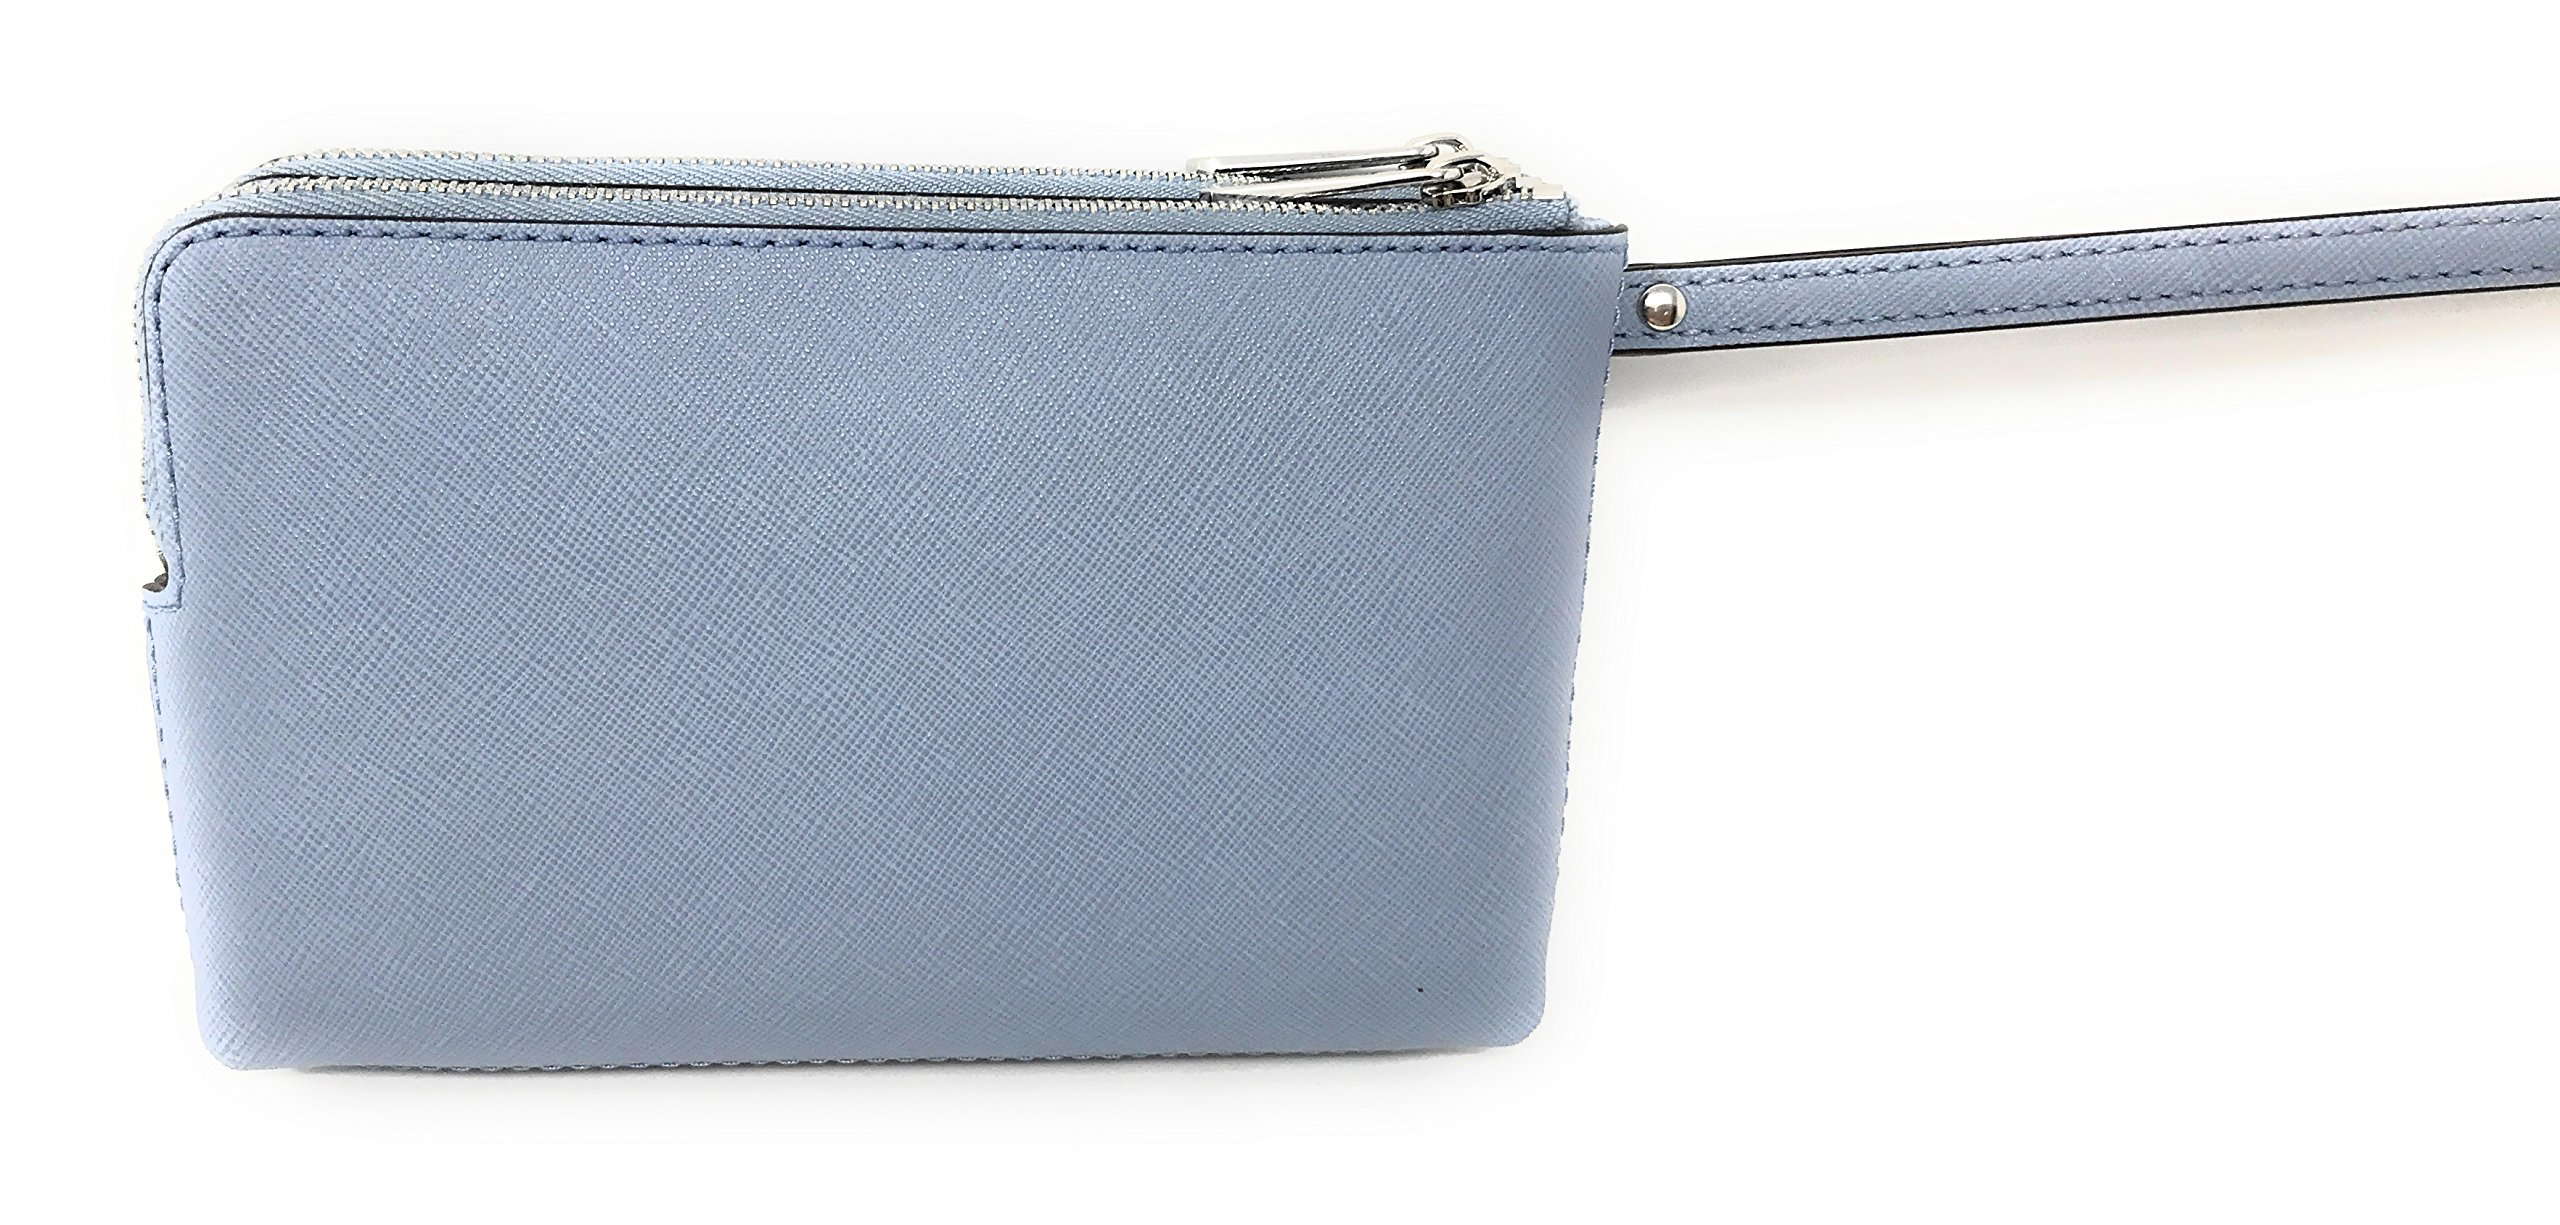 Michael Kors Jet Set Travel Large Double Gusset Wristlet Bag Purse in Pale Blue by Michael Kors (Image #2)